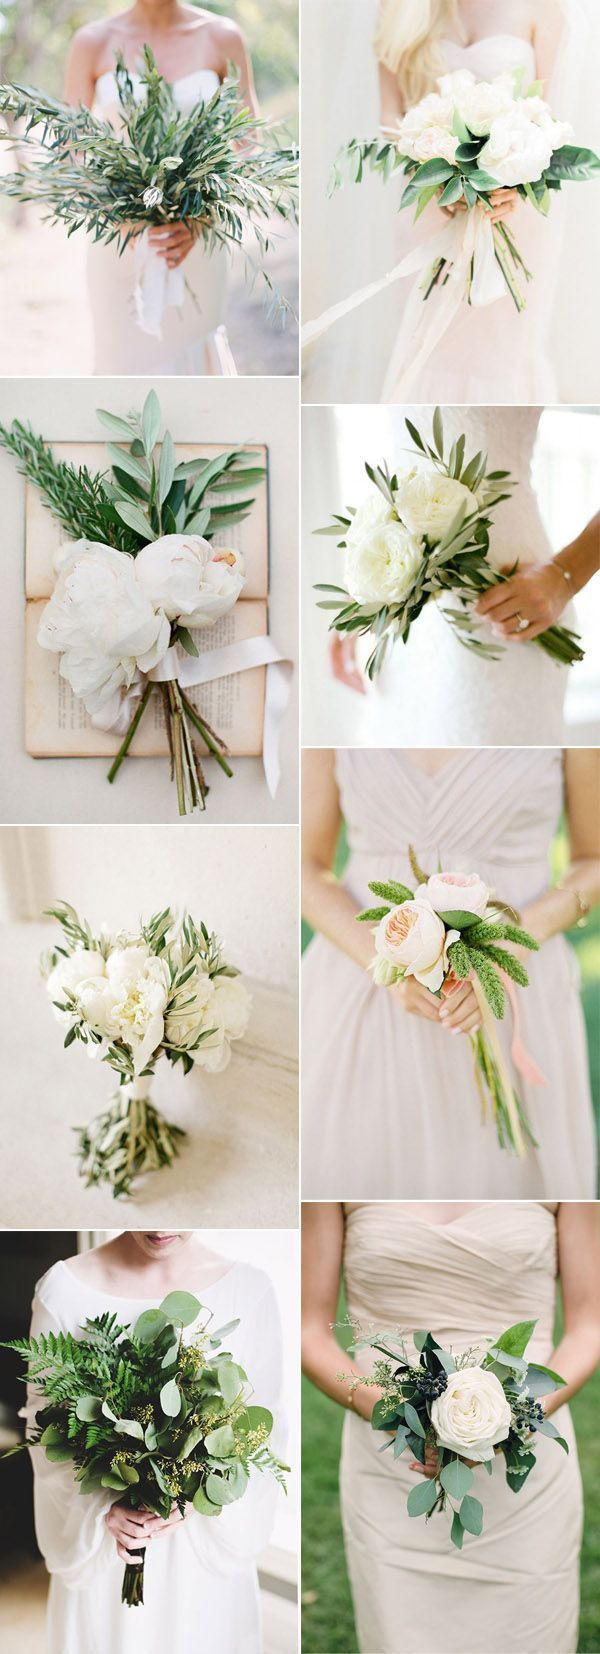 2017 trends easy diy organic minimalist wedding ideas to be 2017 trends easy diy organic minimalist wedding ideas solutioingenieria